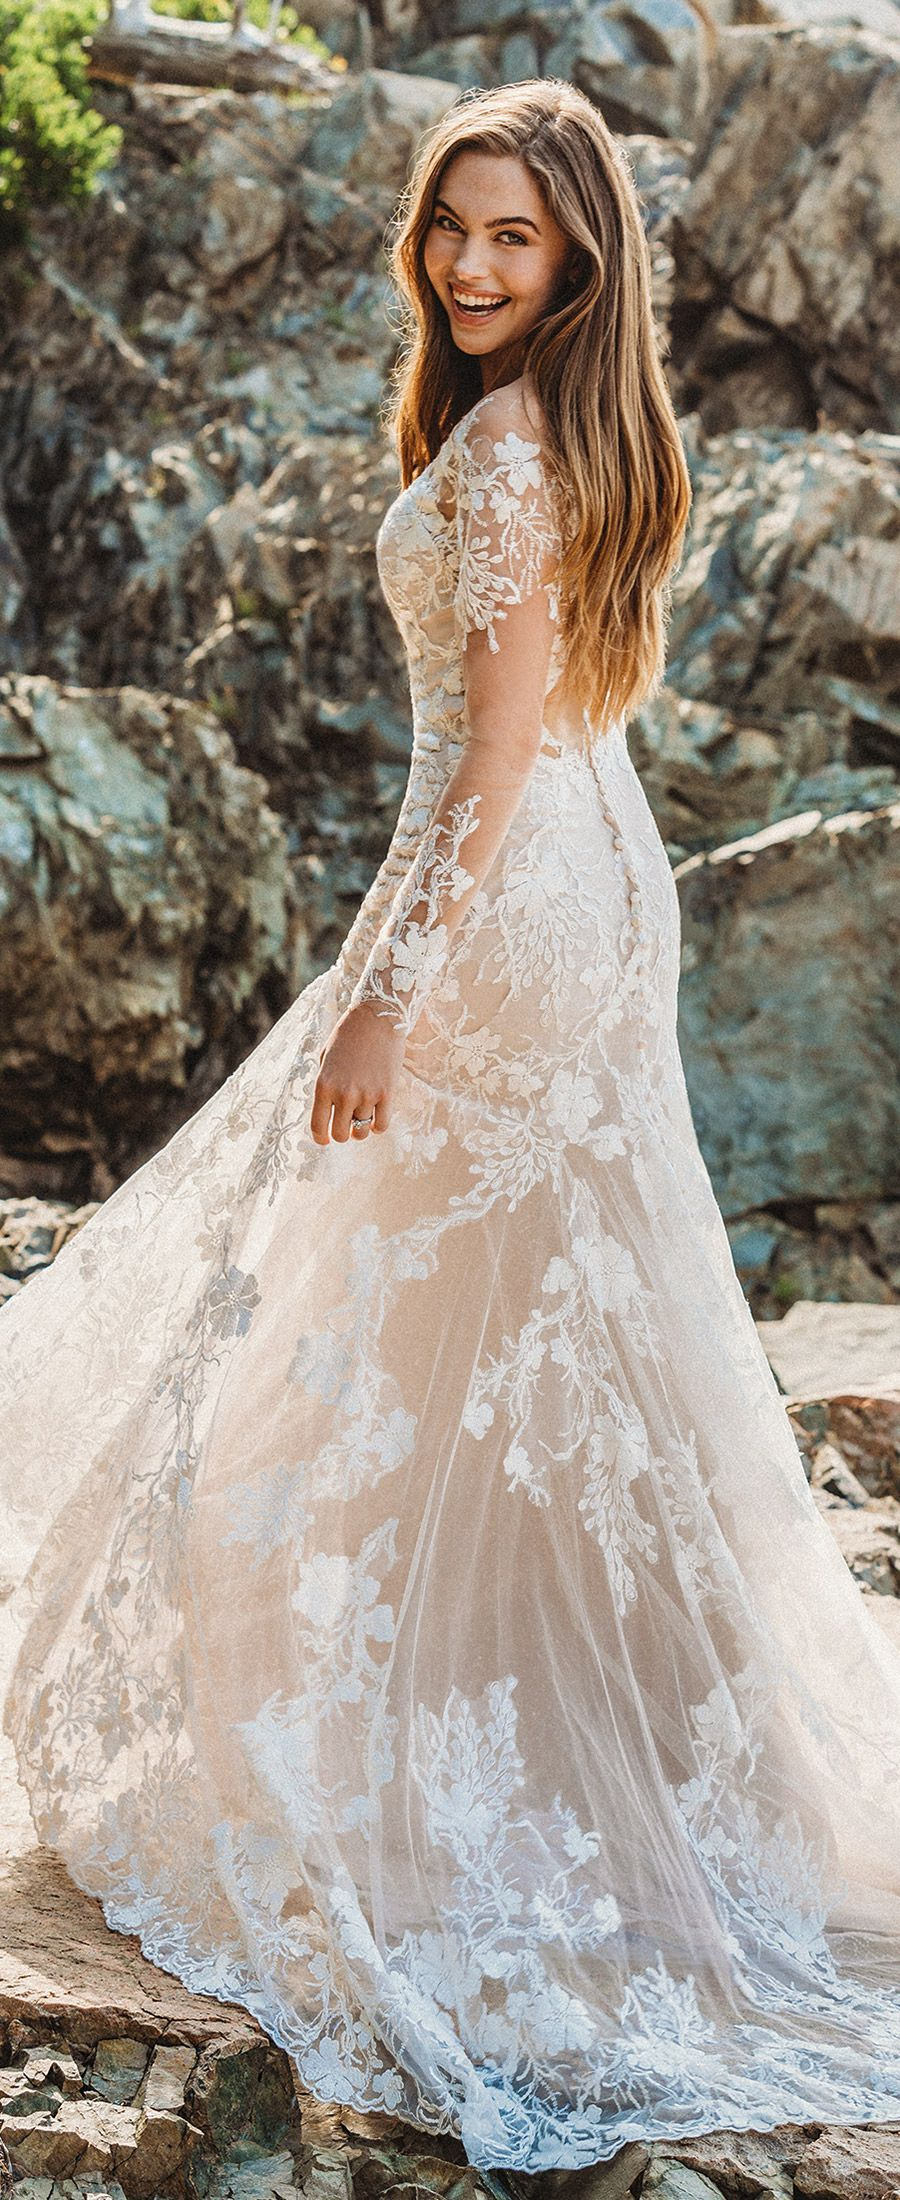 Ad Gorgeous Wedding Dress By Allure Bridals This Long Sleeve Floral Lace Sheath Gown Featur Bridal Dresses Mermaid Lace Wedding Dress Vintage Wedding Dresses [ 2200 x 900 Pixel ]